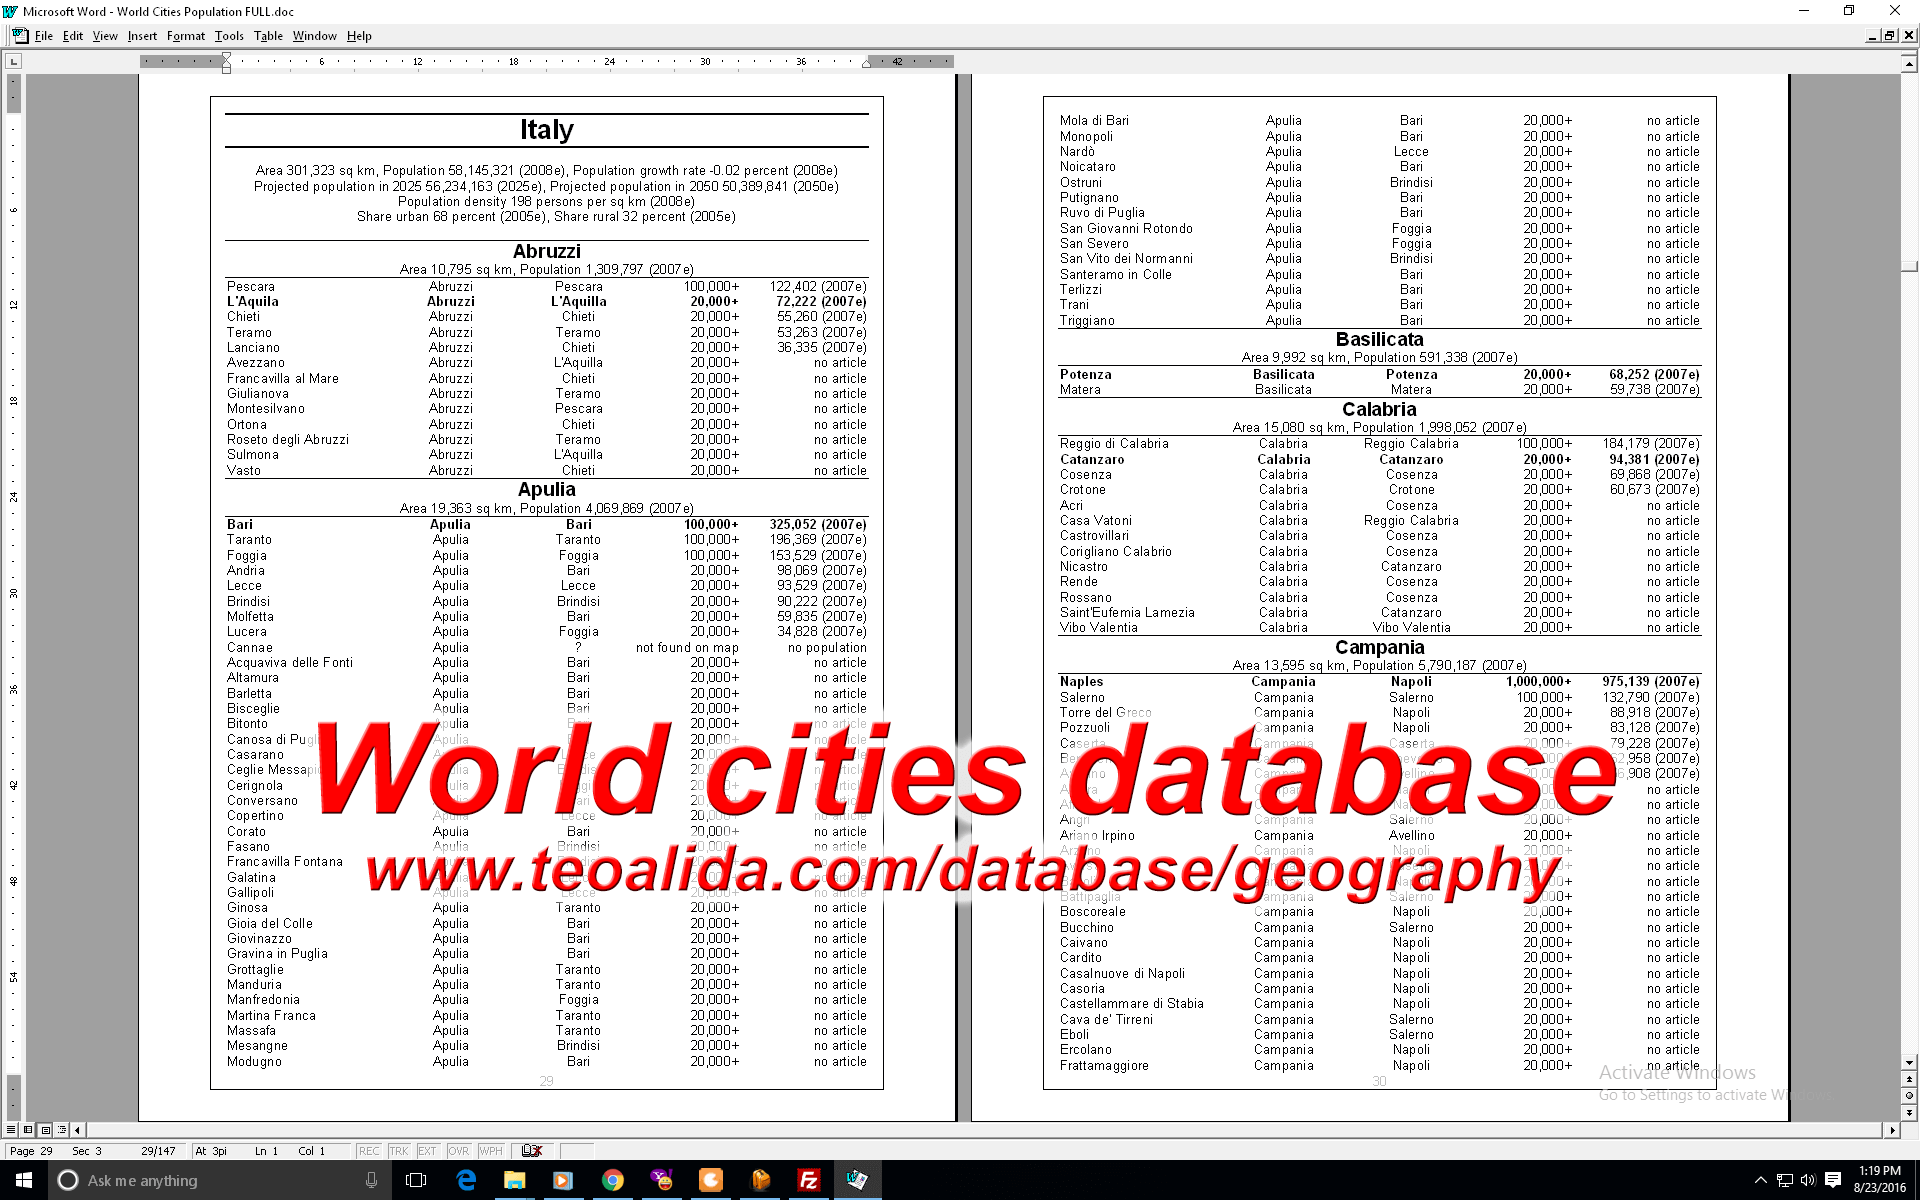 World city database